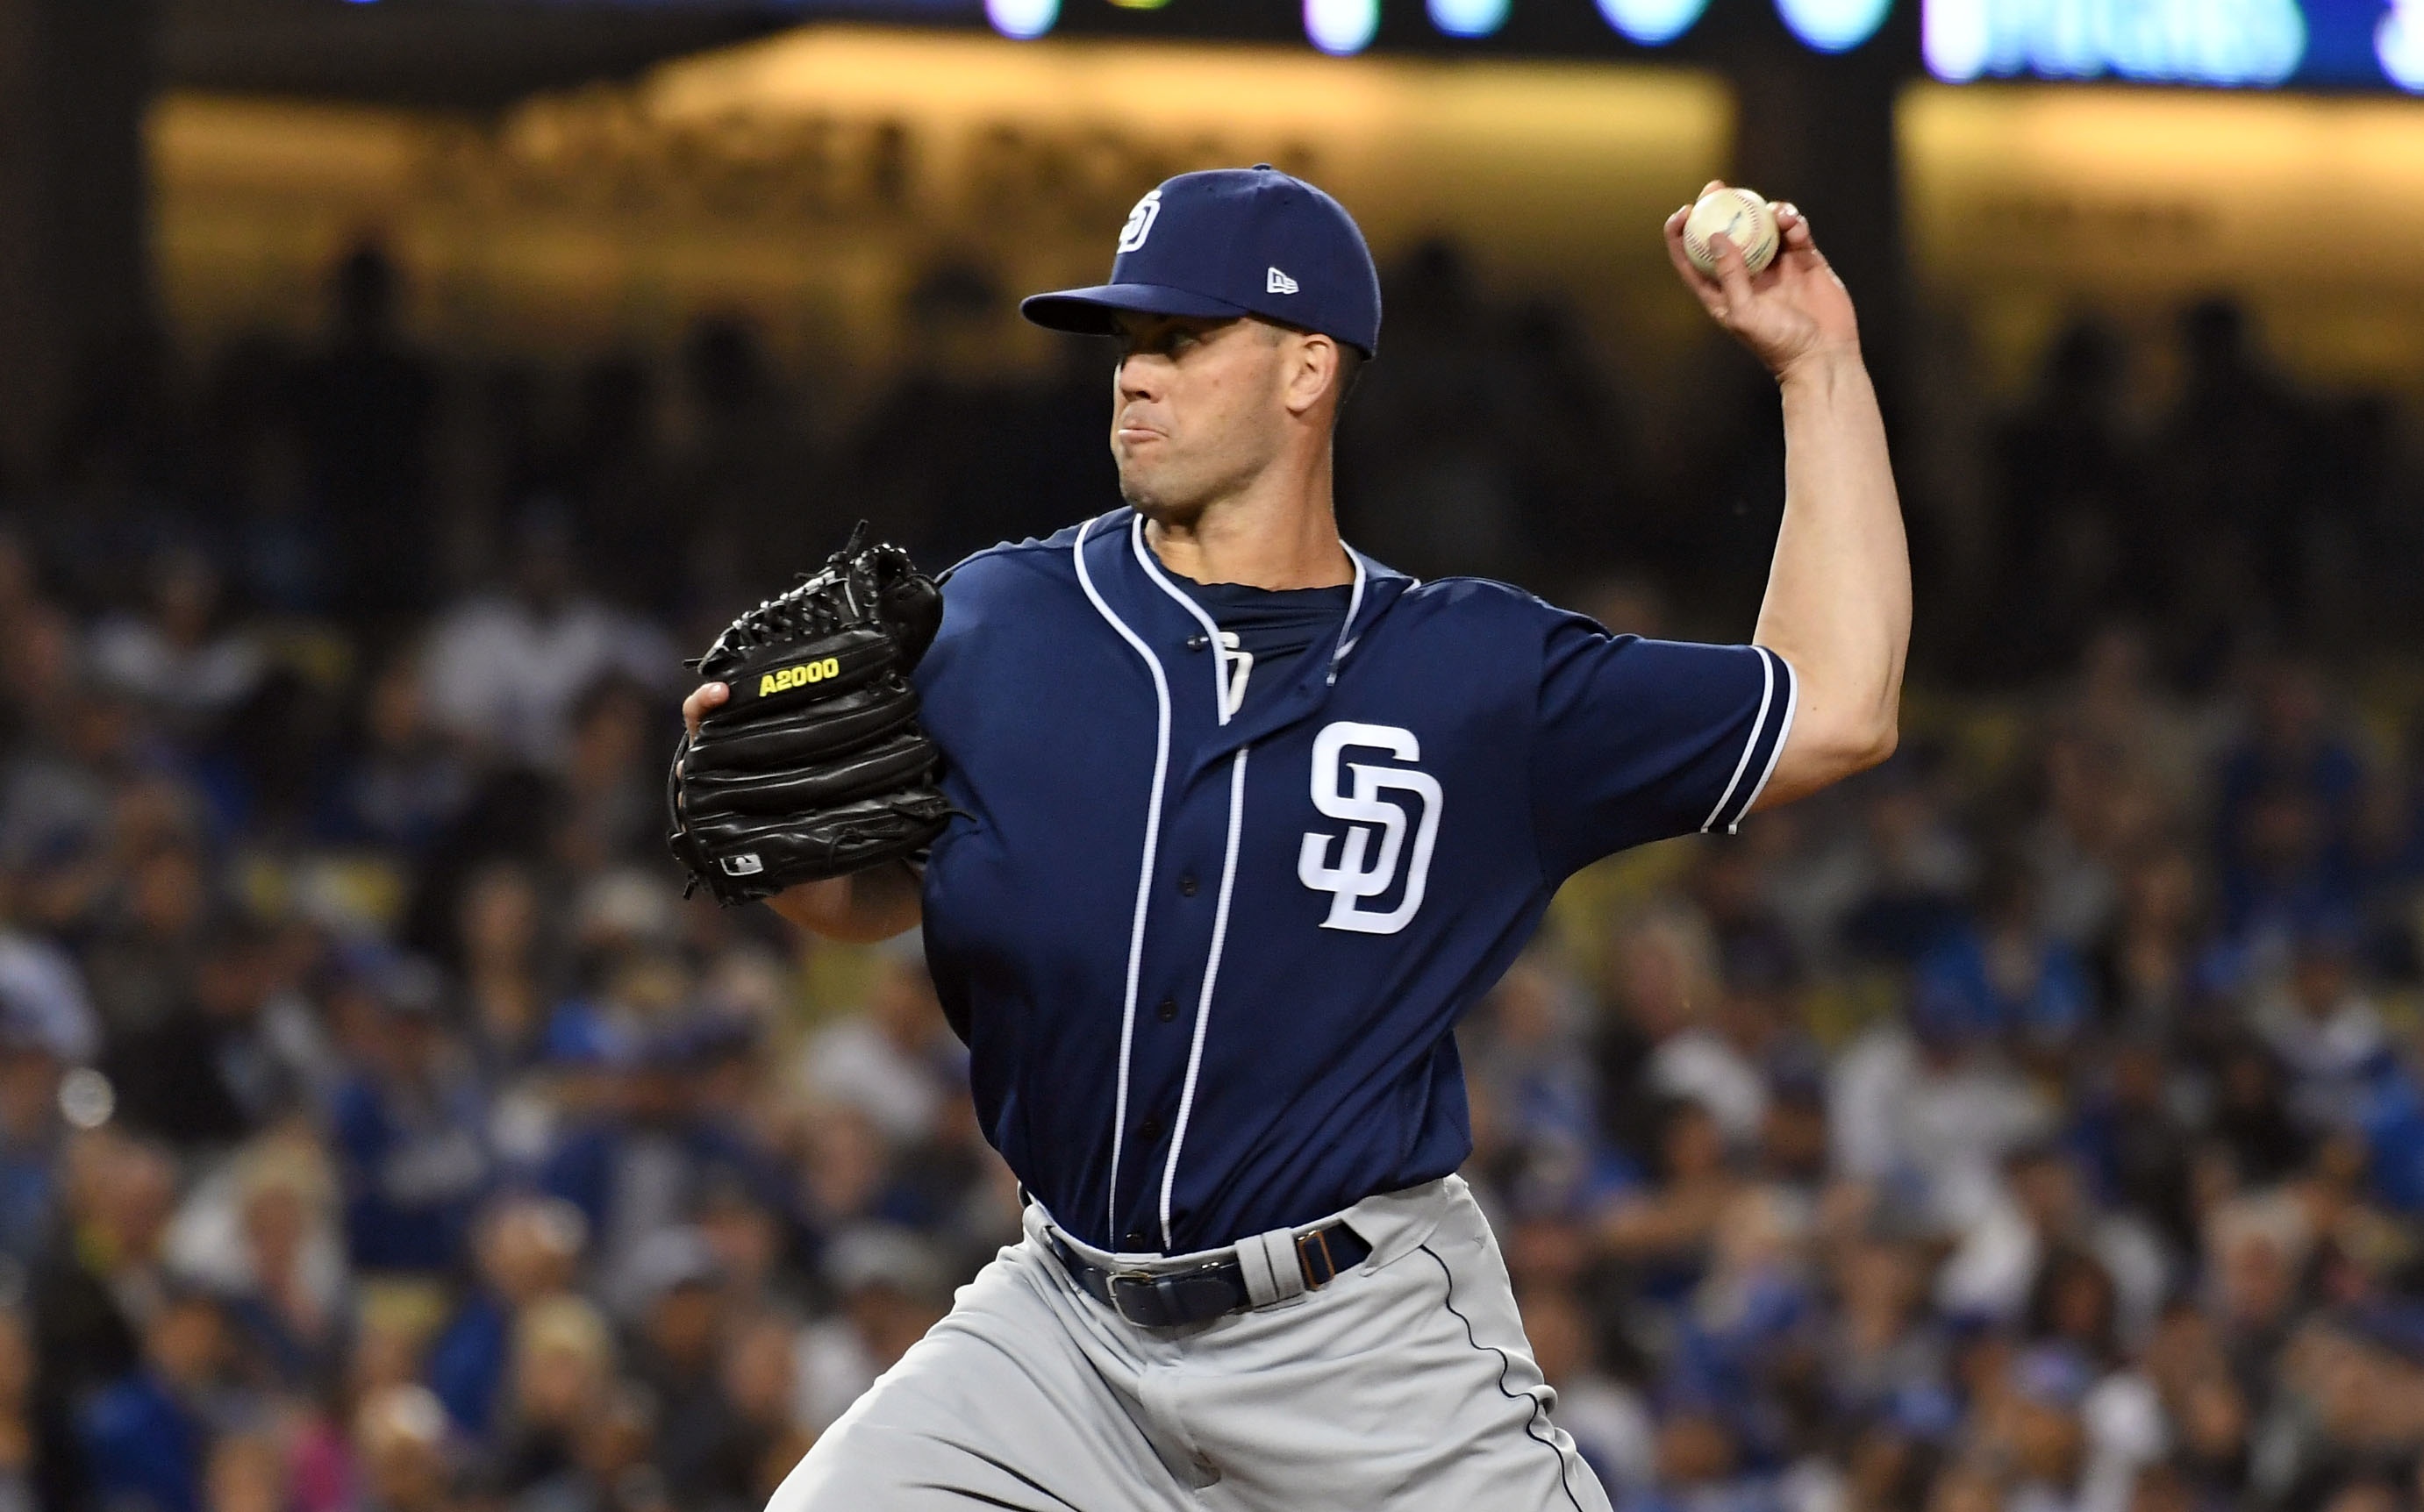 Margot, Solarte lead Padres to 7-6 win over Giants